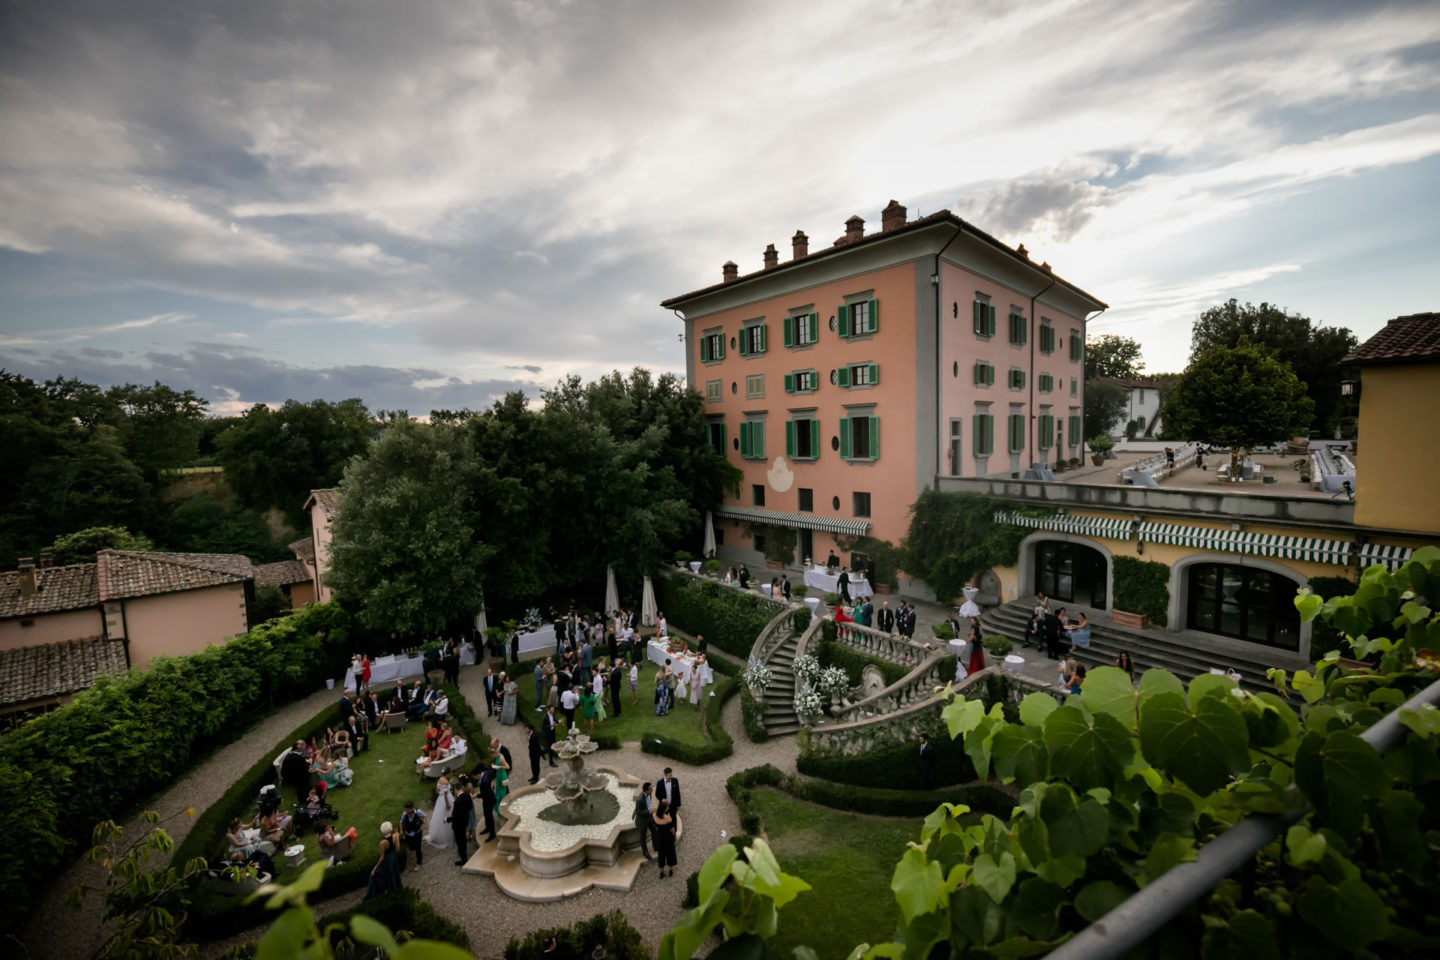 Panorama :: Amazing wedding day at Il Borro :: Luxury wedding photography - 35 :: Panorama